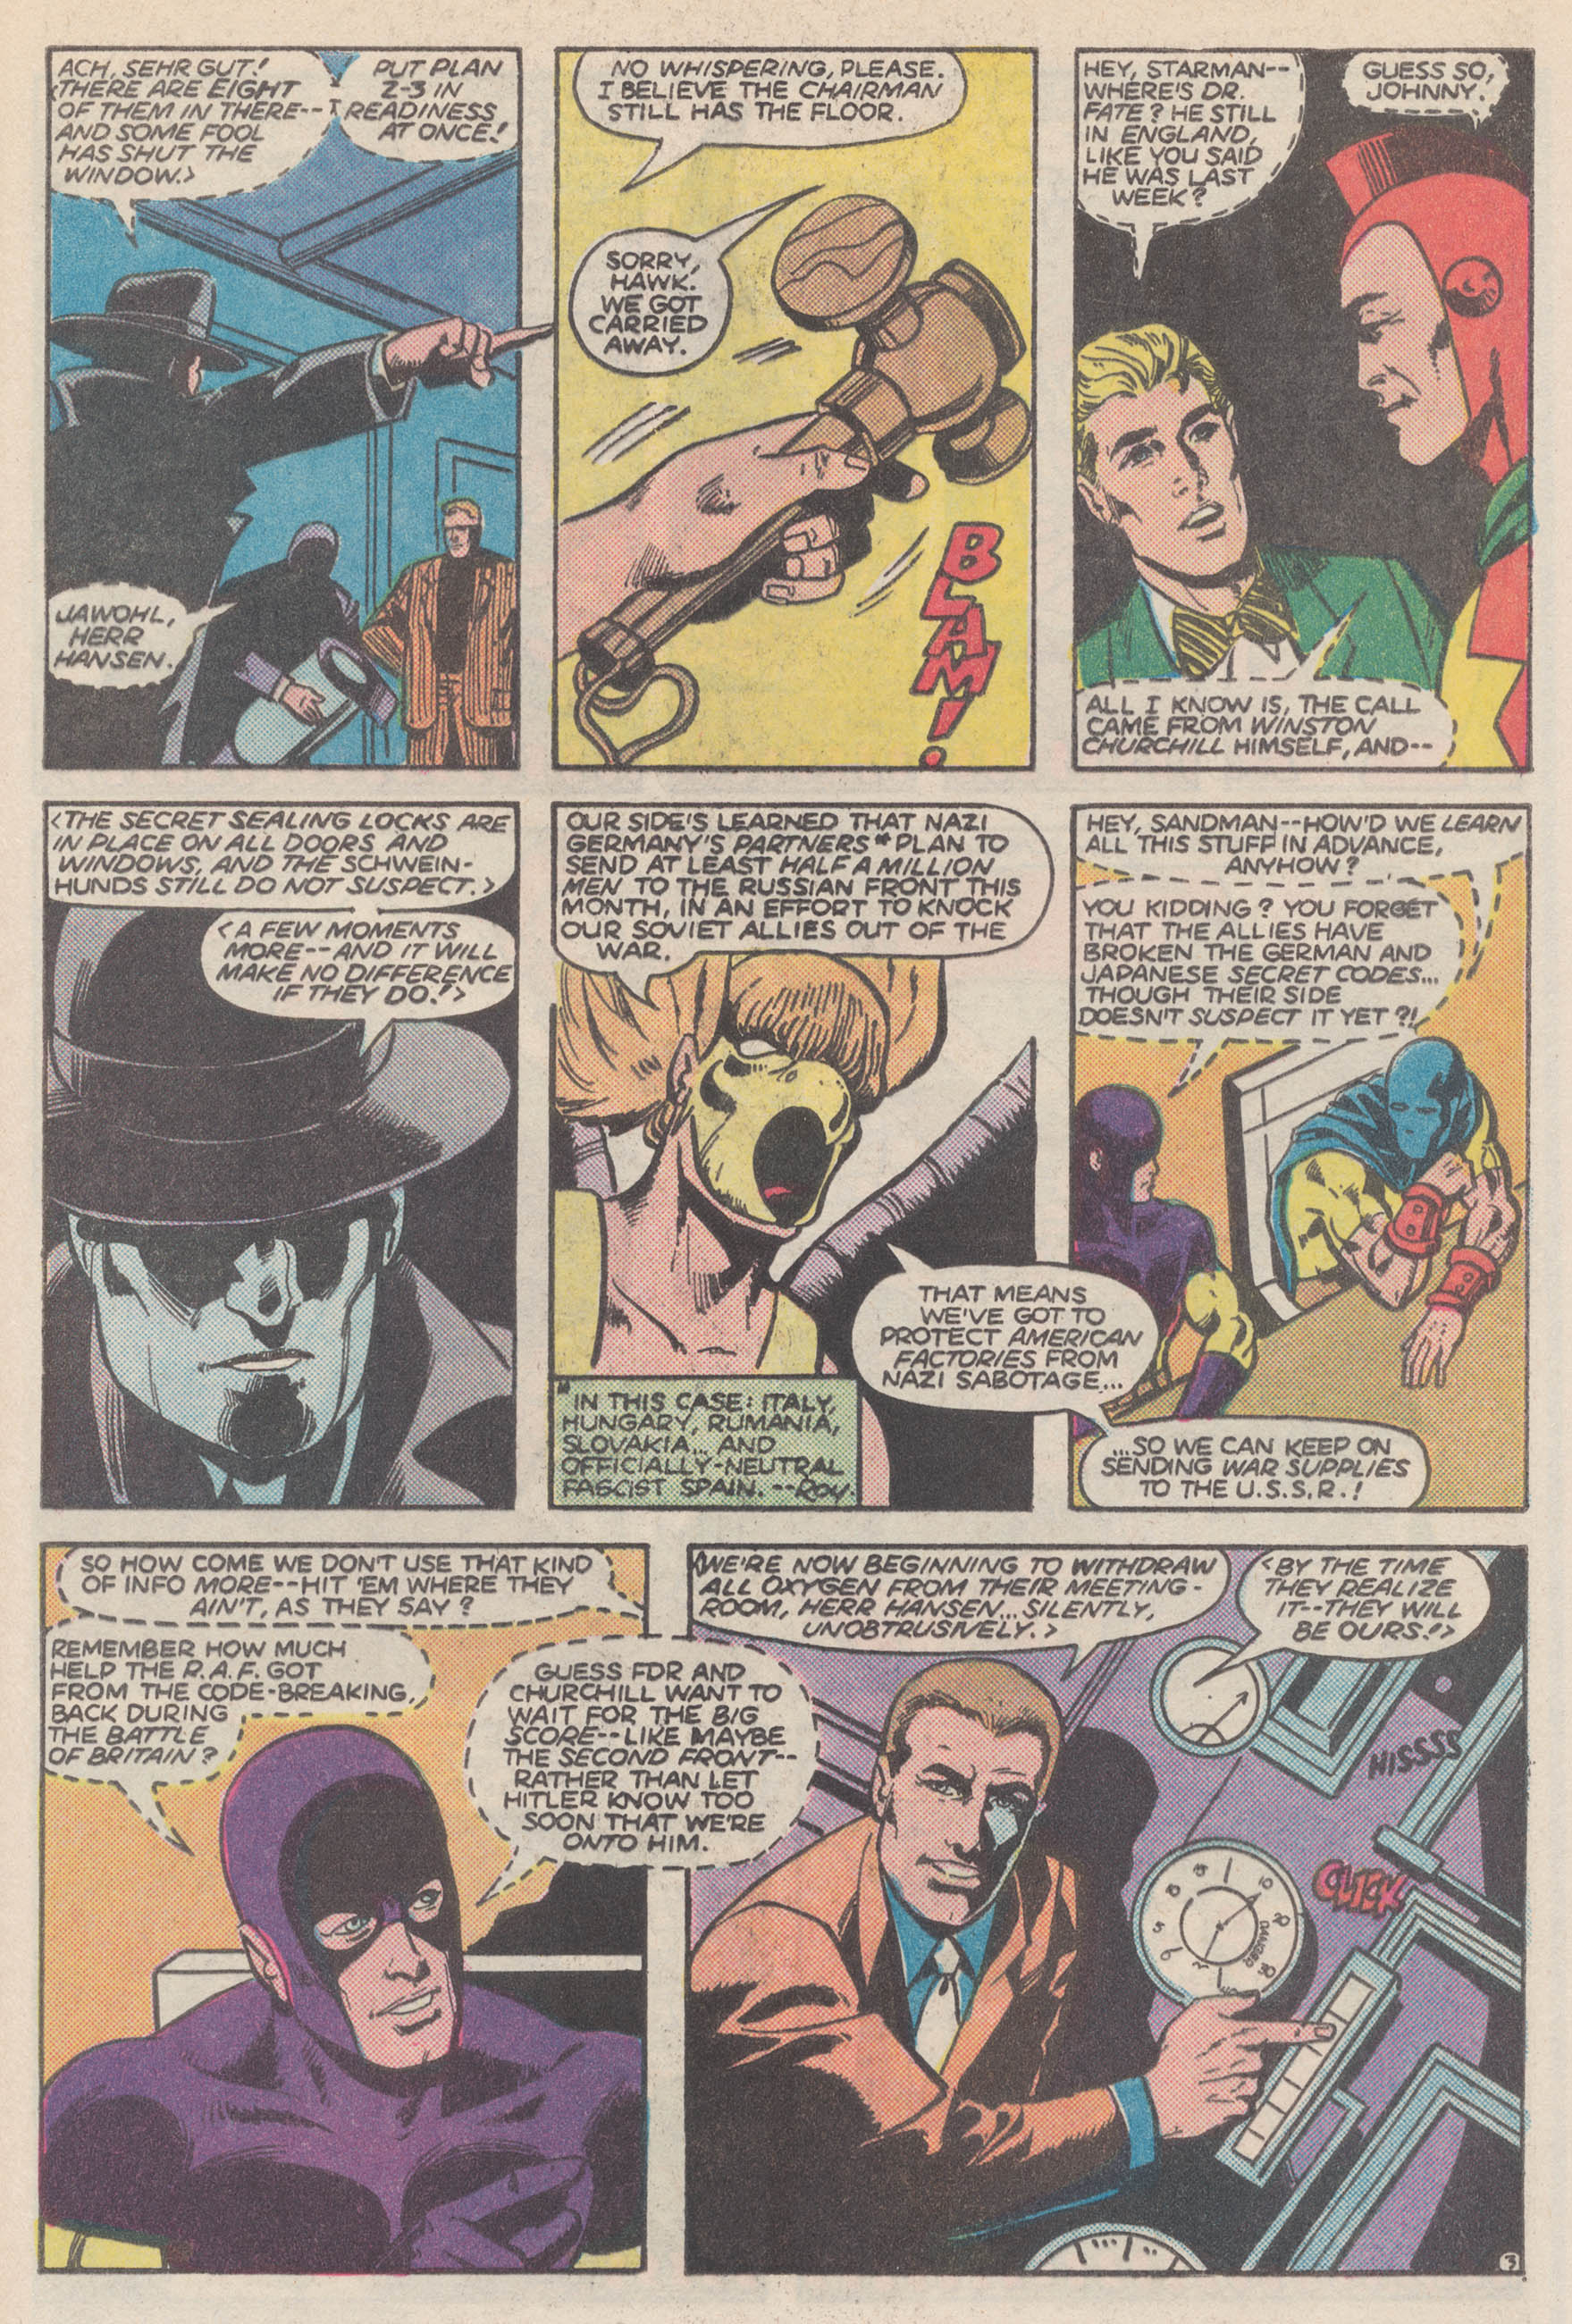 Read online All-Star Squadron comic -  Issue #50 - 6